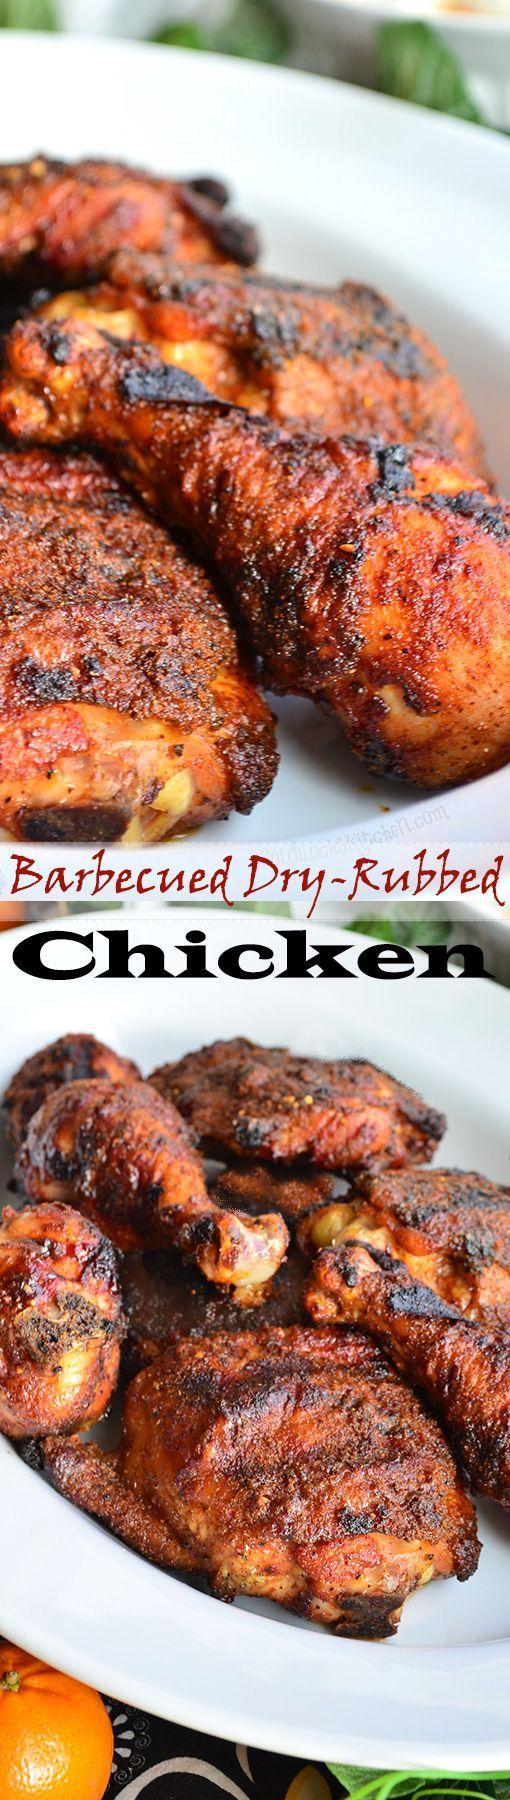 This Barbecued Dry-Rubbed Chicken recipe seasons the meat with a rub that ends up melting as the chicken cooks and turning into an incredibly savory glaze. Great Barbeque dinner.